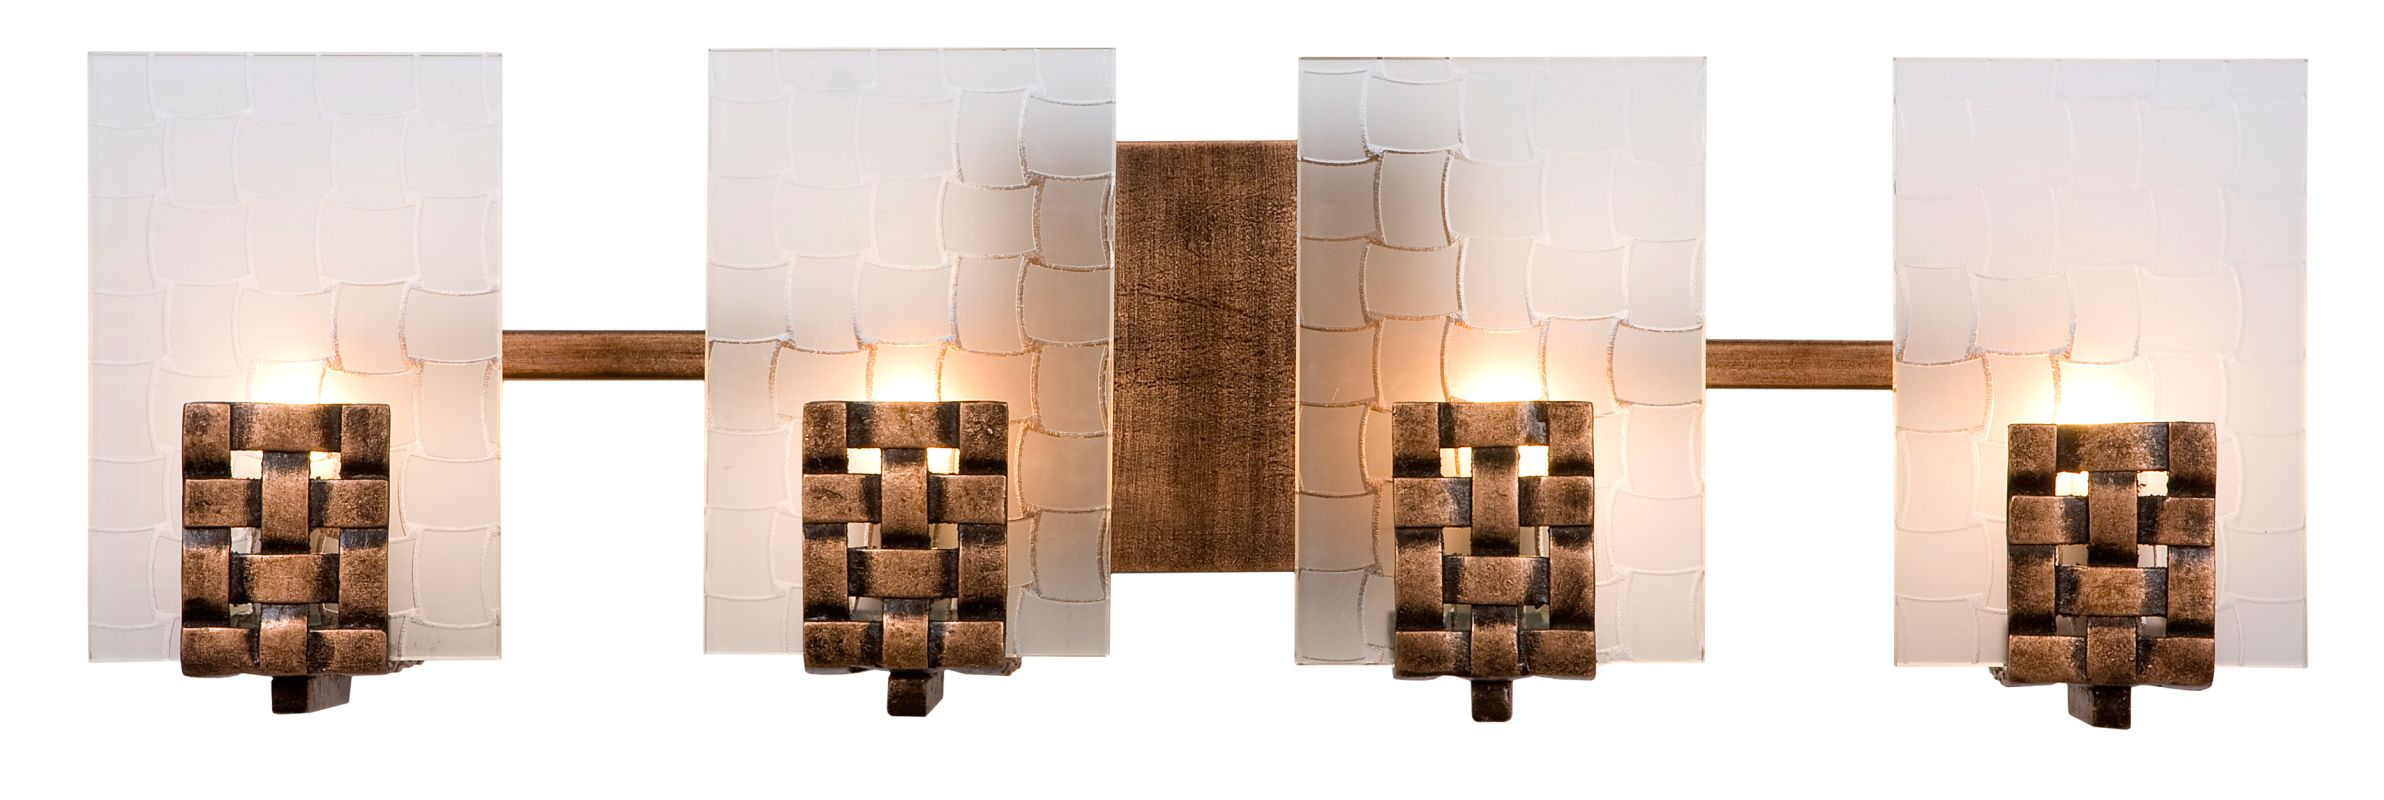 Varaluz 180B04 Blackened Copper With Frosted Plate Glass